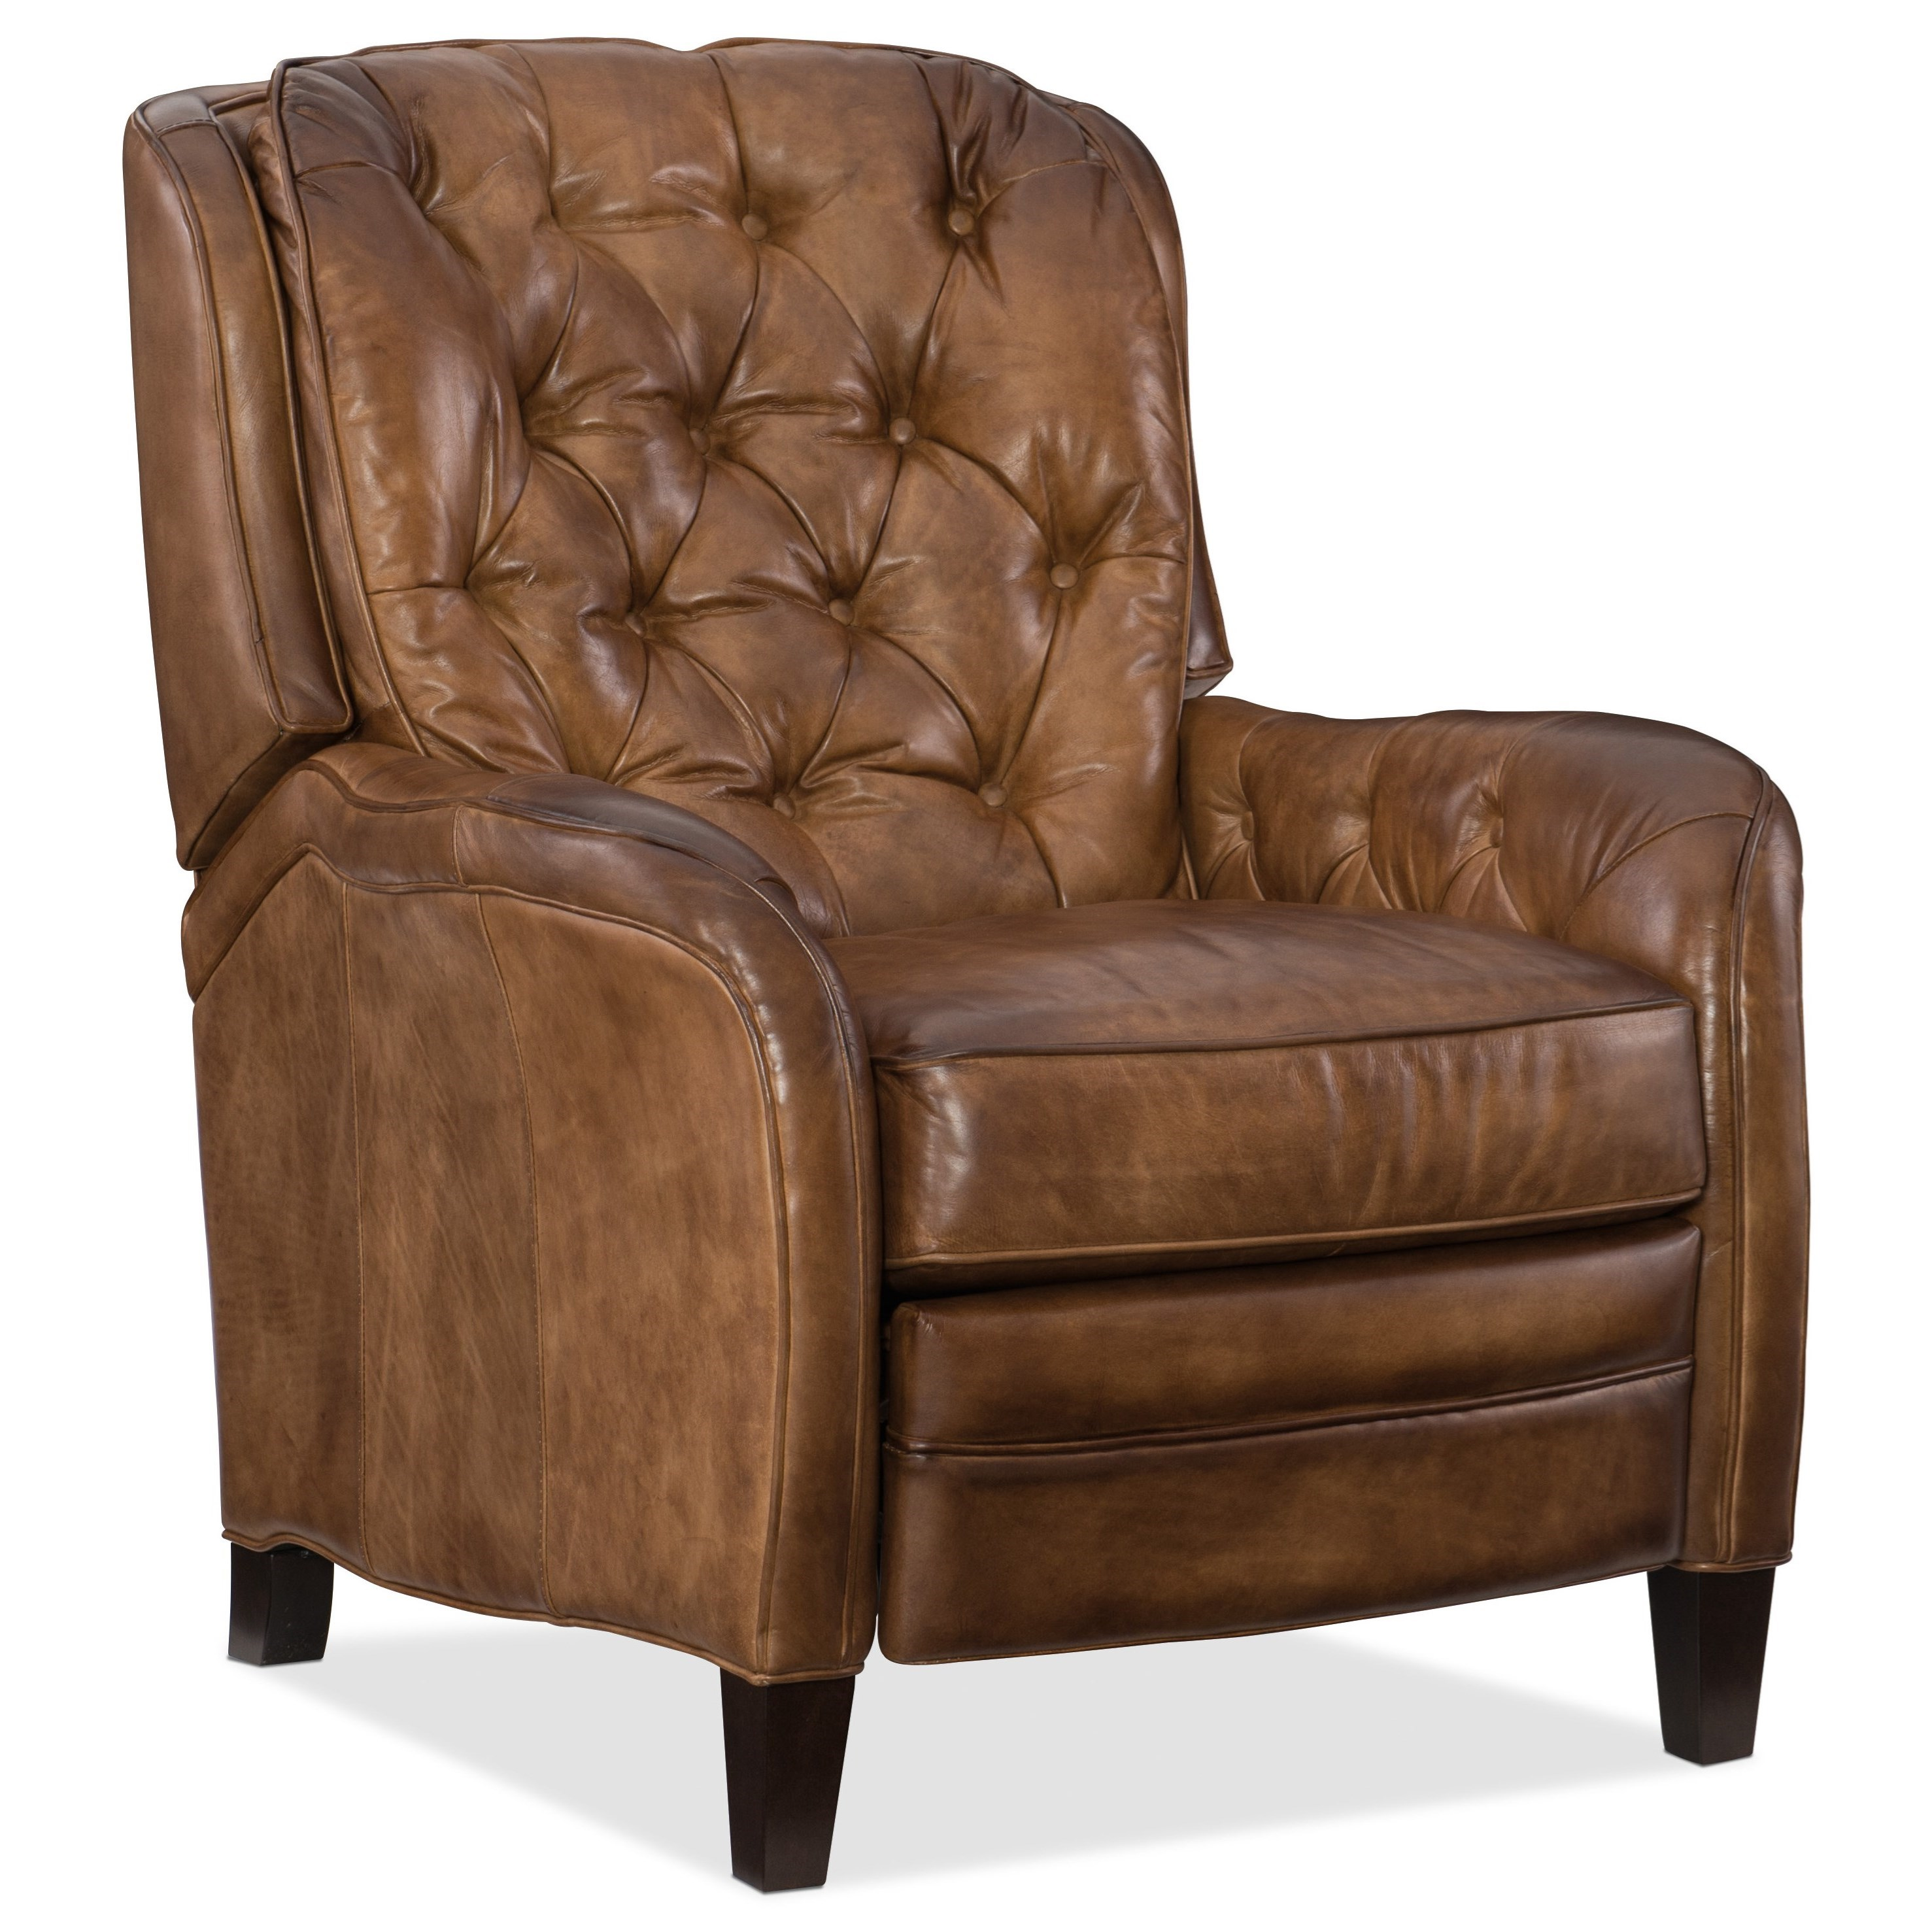 Nolte Recliner by Hooker Furniture at Miller Waldrop Furniture and Decor